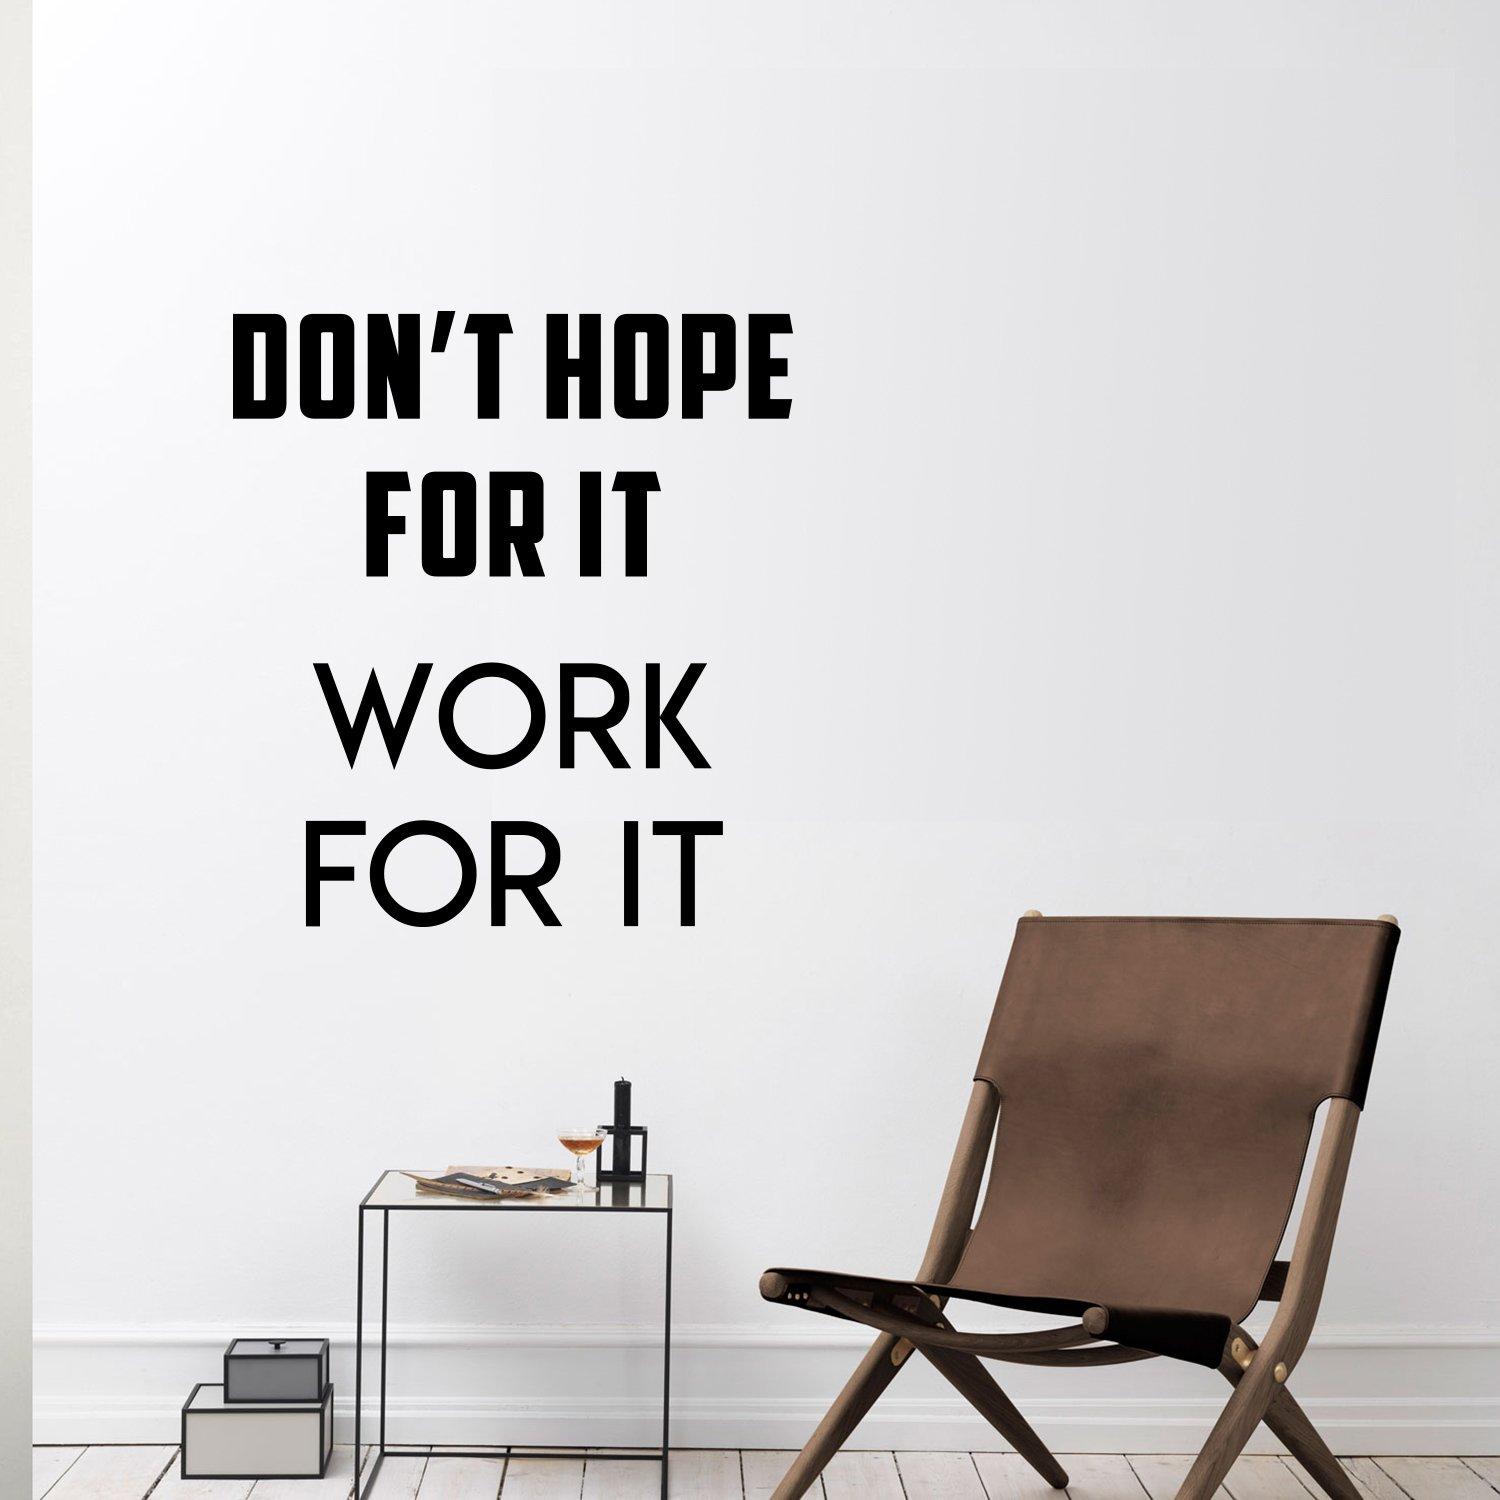 Wall Art Vinyl Decal Inspirational Life Quotes - Don't Hope For It Work For It - 25'' x 23'' Decoration Vinyl Sticker - Motivational Wall Art Decal - Positive Quote